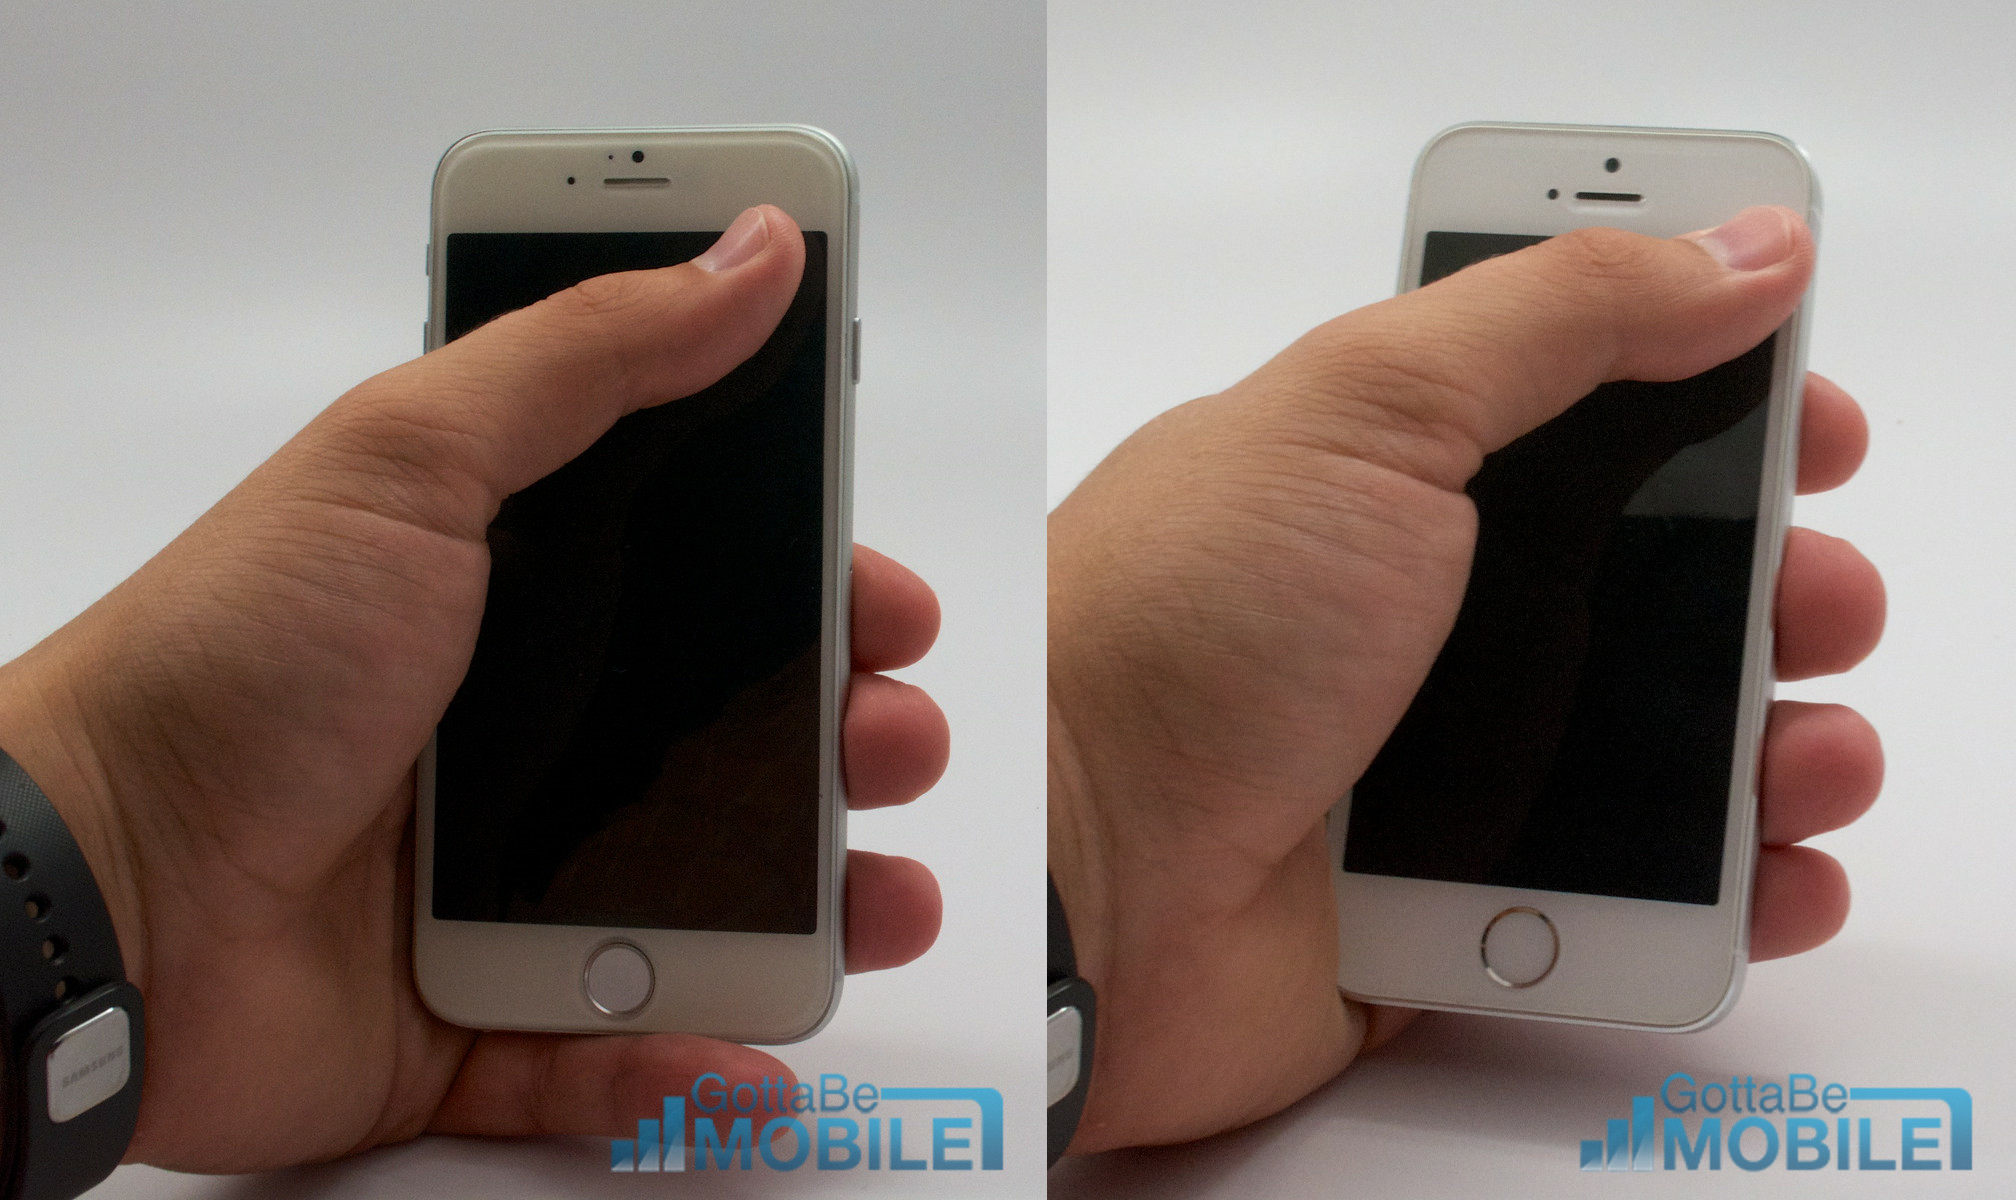 ... iPhone 6 design is small enough and easy enough to hold for one-hand